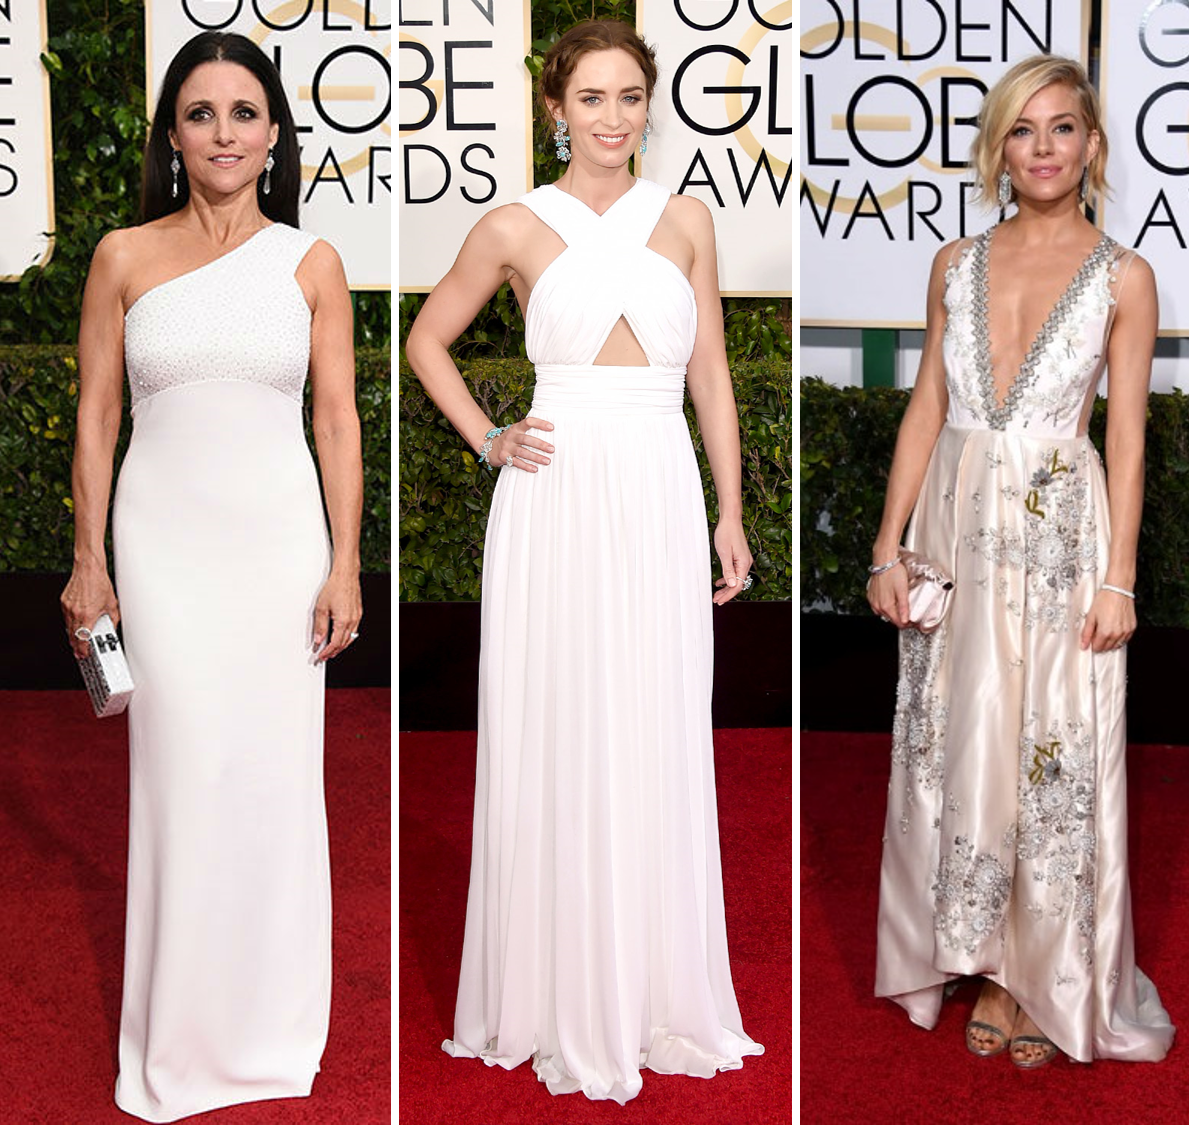 e500c444ae 1. Julia Louis-Dreyfus in Narcisco Rodriguez 2. Emily Blunt in Michael Kors  3. Sienna Miller in Miu Miu